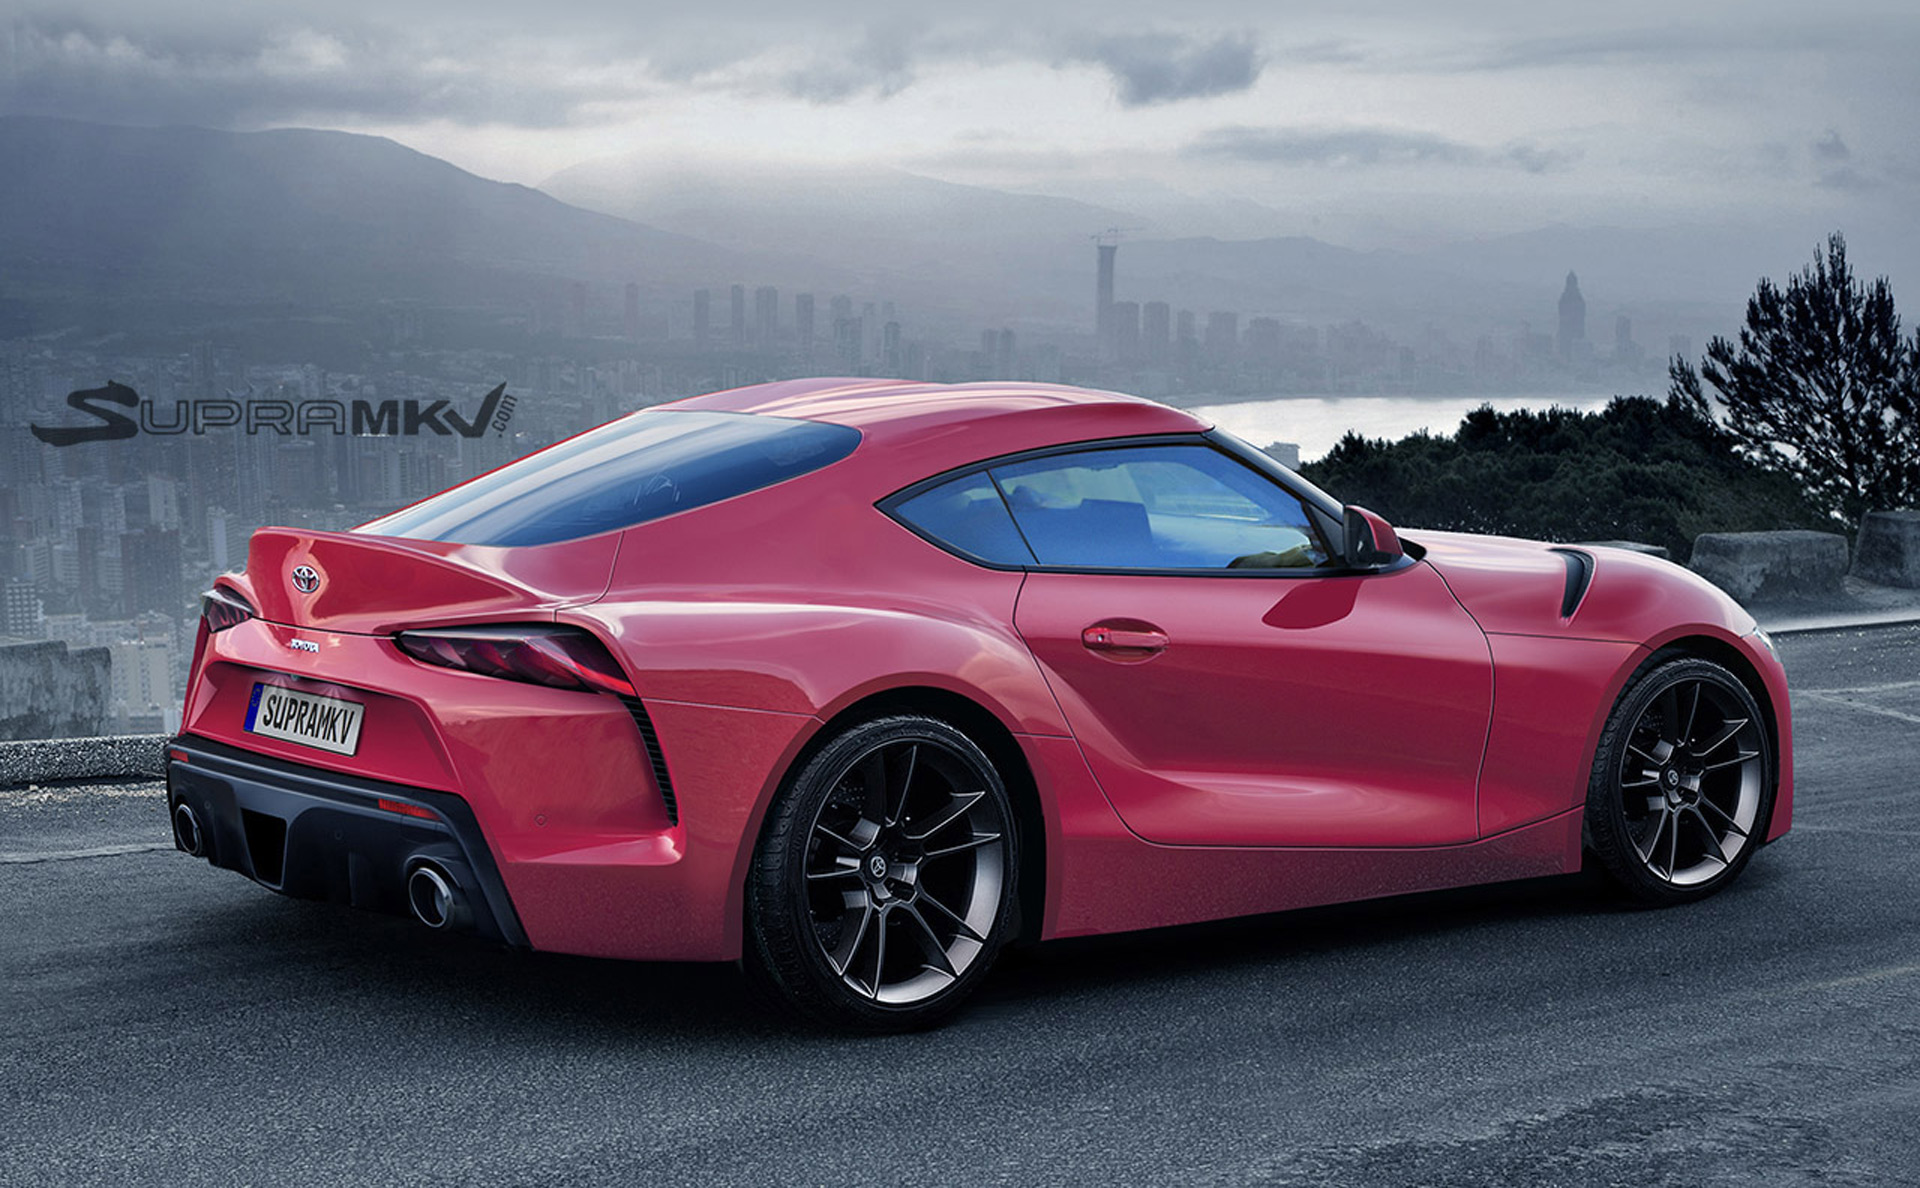 New Information Says 2019 Toyota Supra Will Get A Manual Transmission,  Turbo V 6 Engine